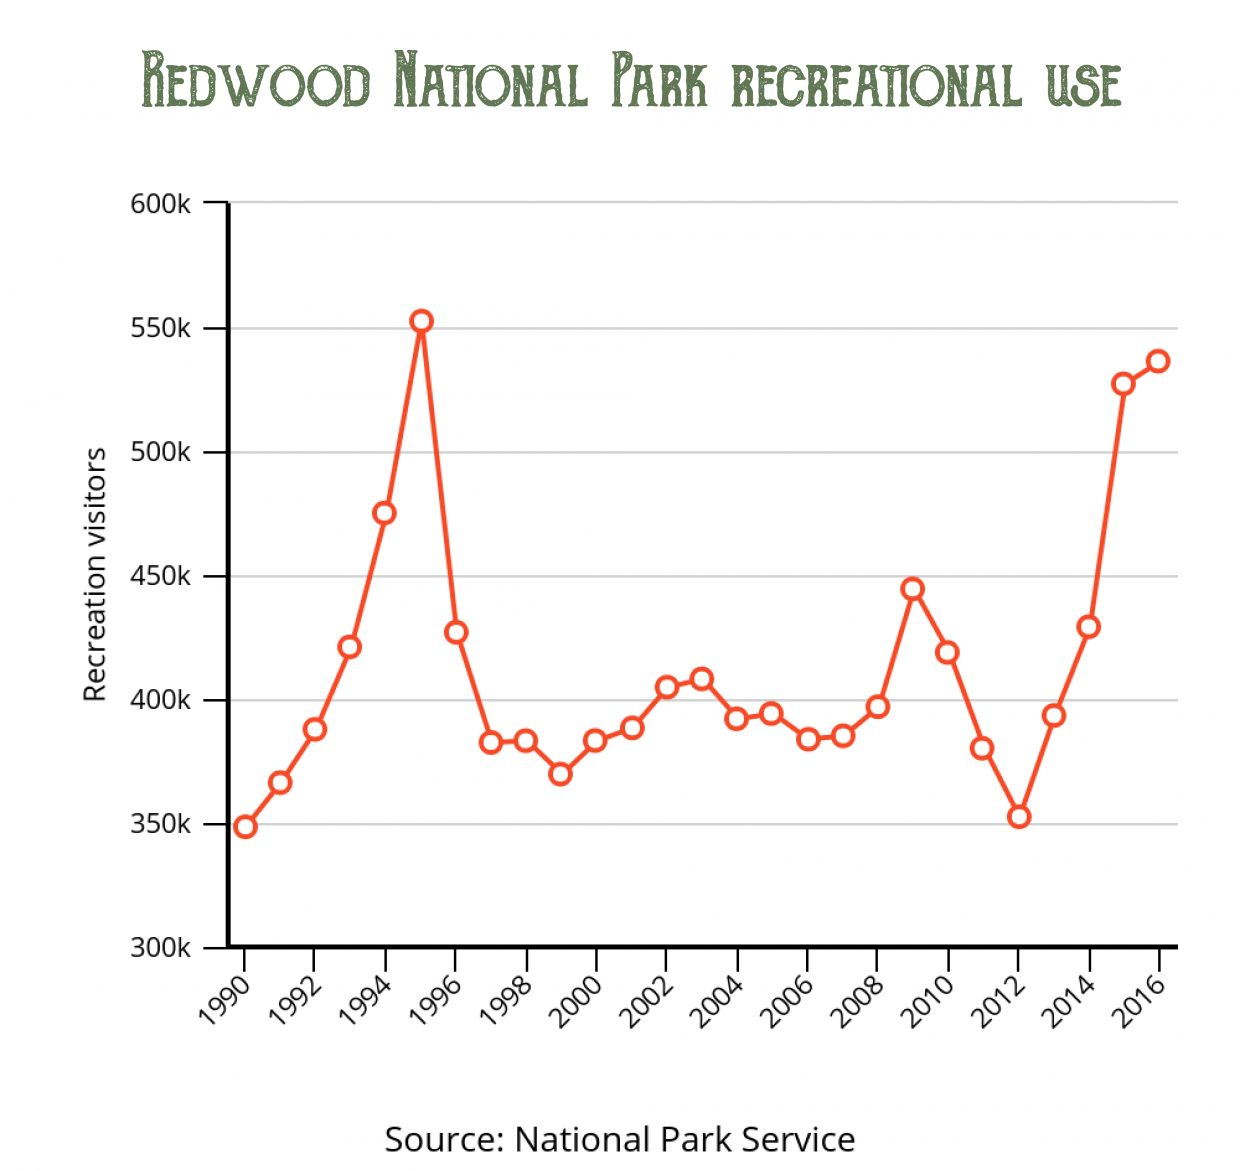 Redwood National Park recreational use map